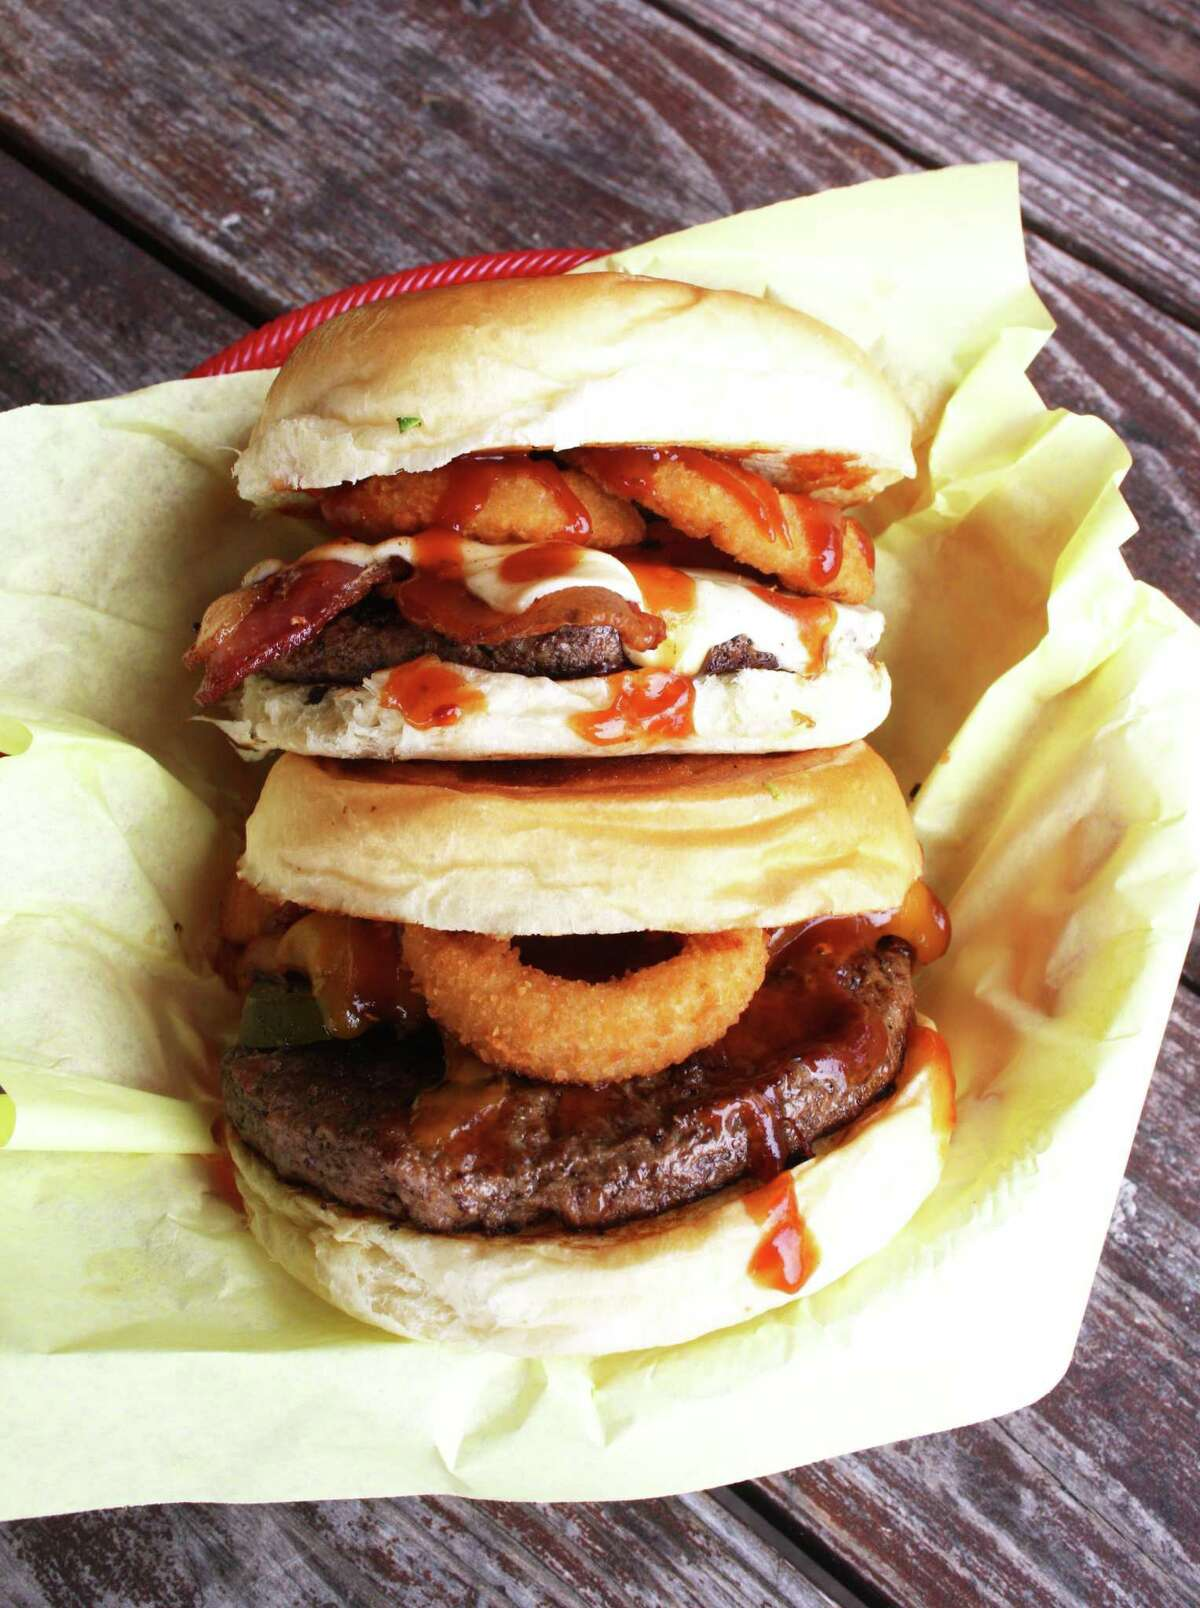 The Tejas BBQ Burger (top) and the Hickory Burger at Chunky's Burgers & More